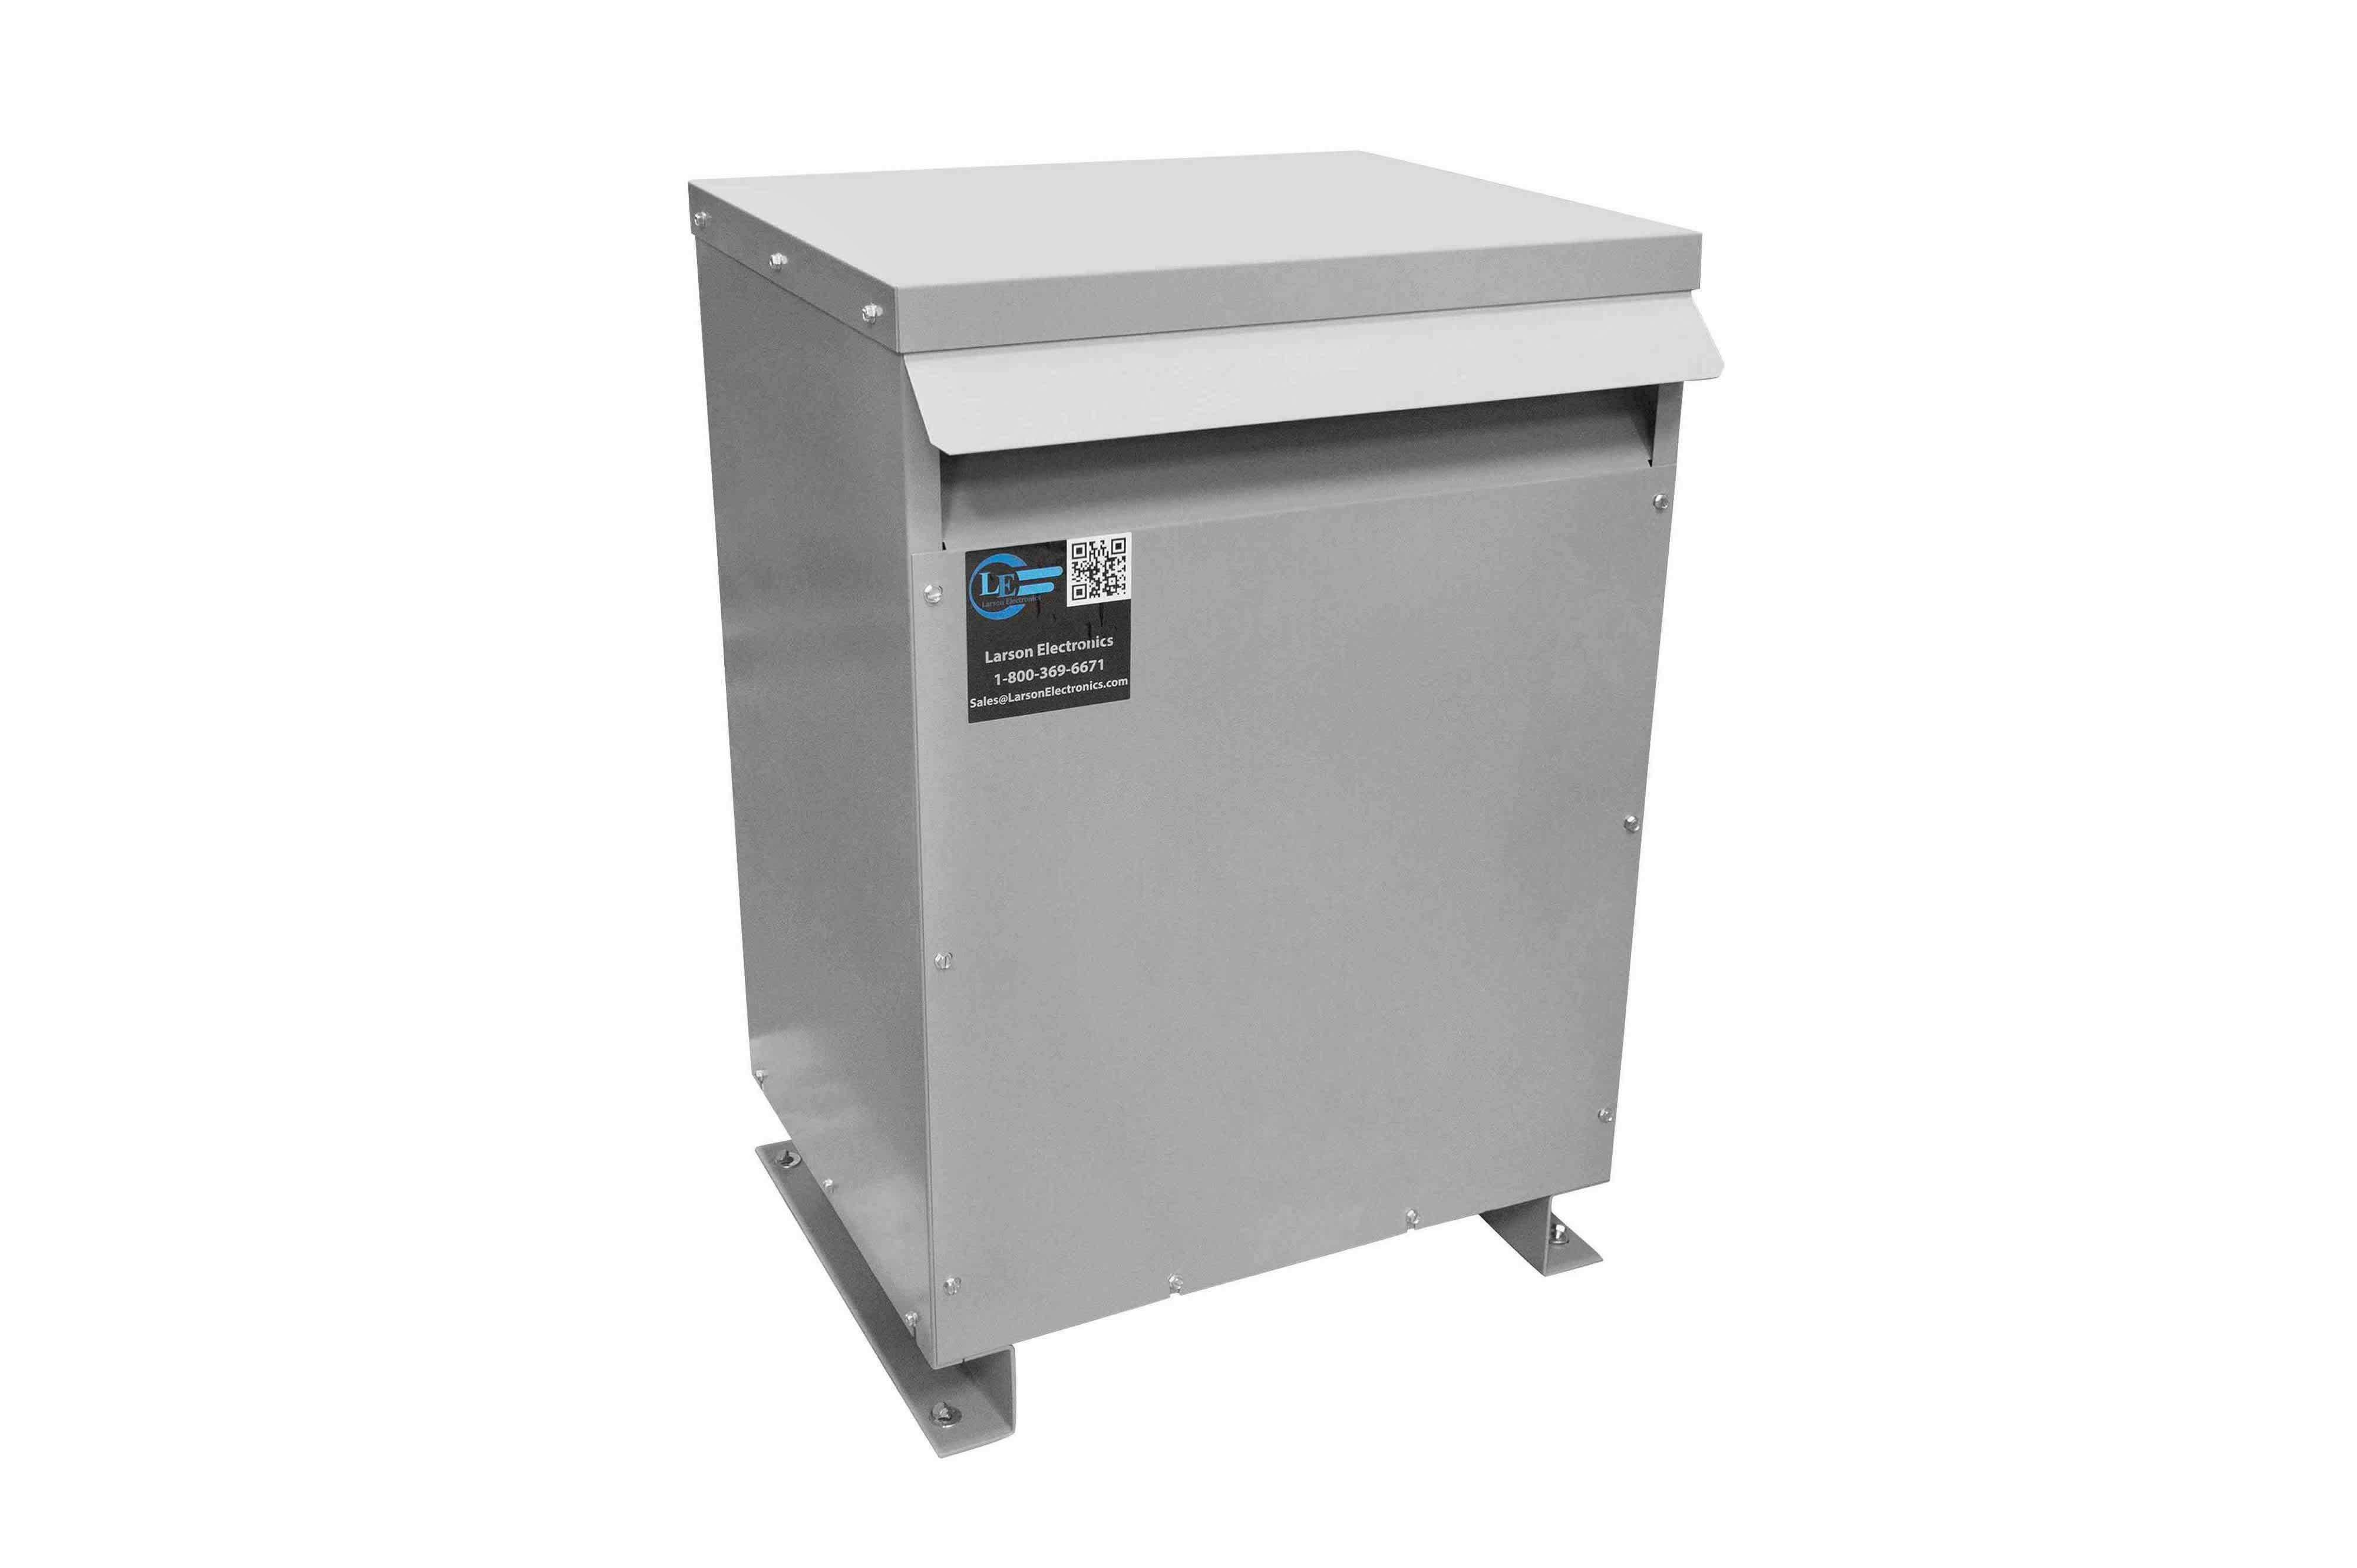 225 kVA 3PH Isolation Transformer, 240V Wye Primary, 480Y/277 Wye-N Secondary, N3R, Ventilated, 60 Hz